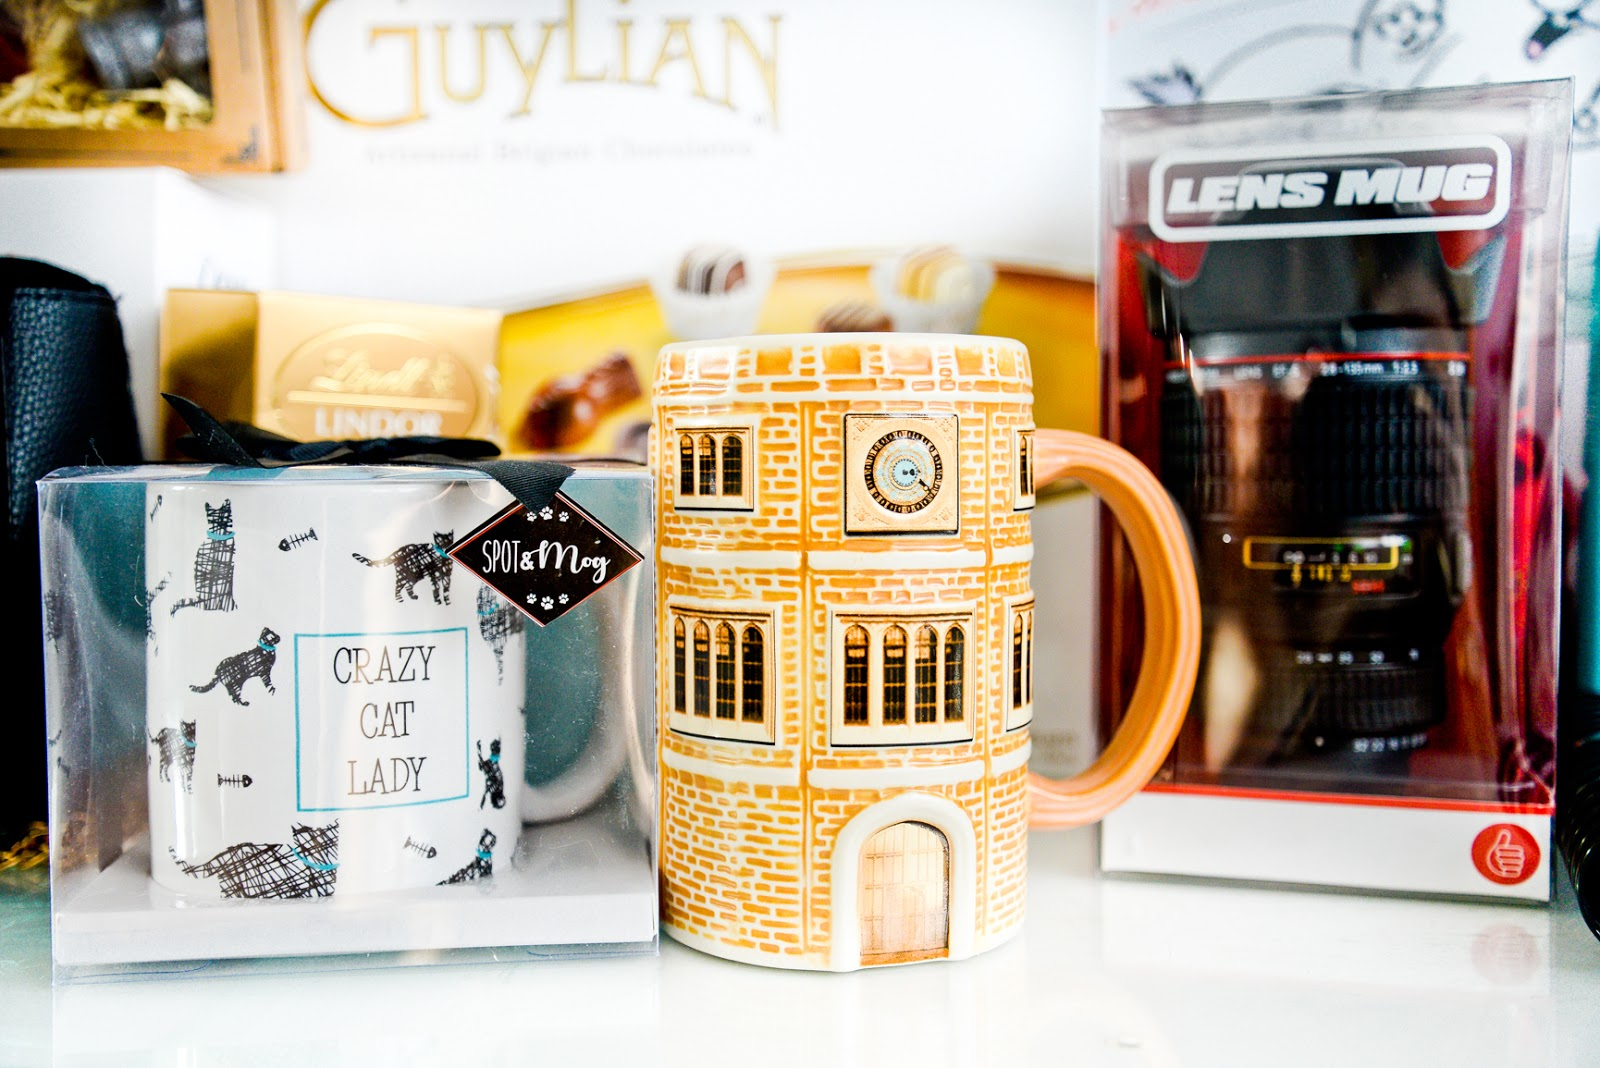 hampton court mug, crazy cat lady mug, lens mug